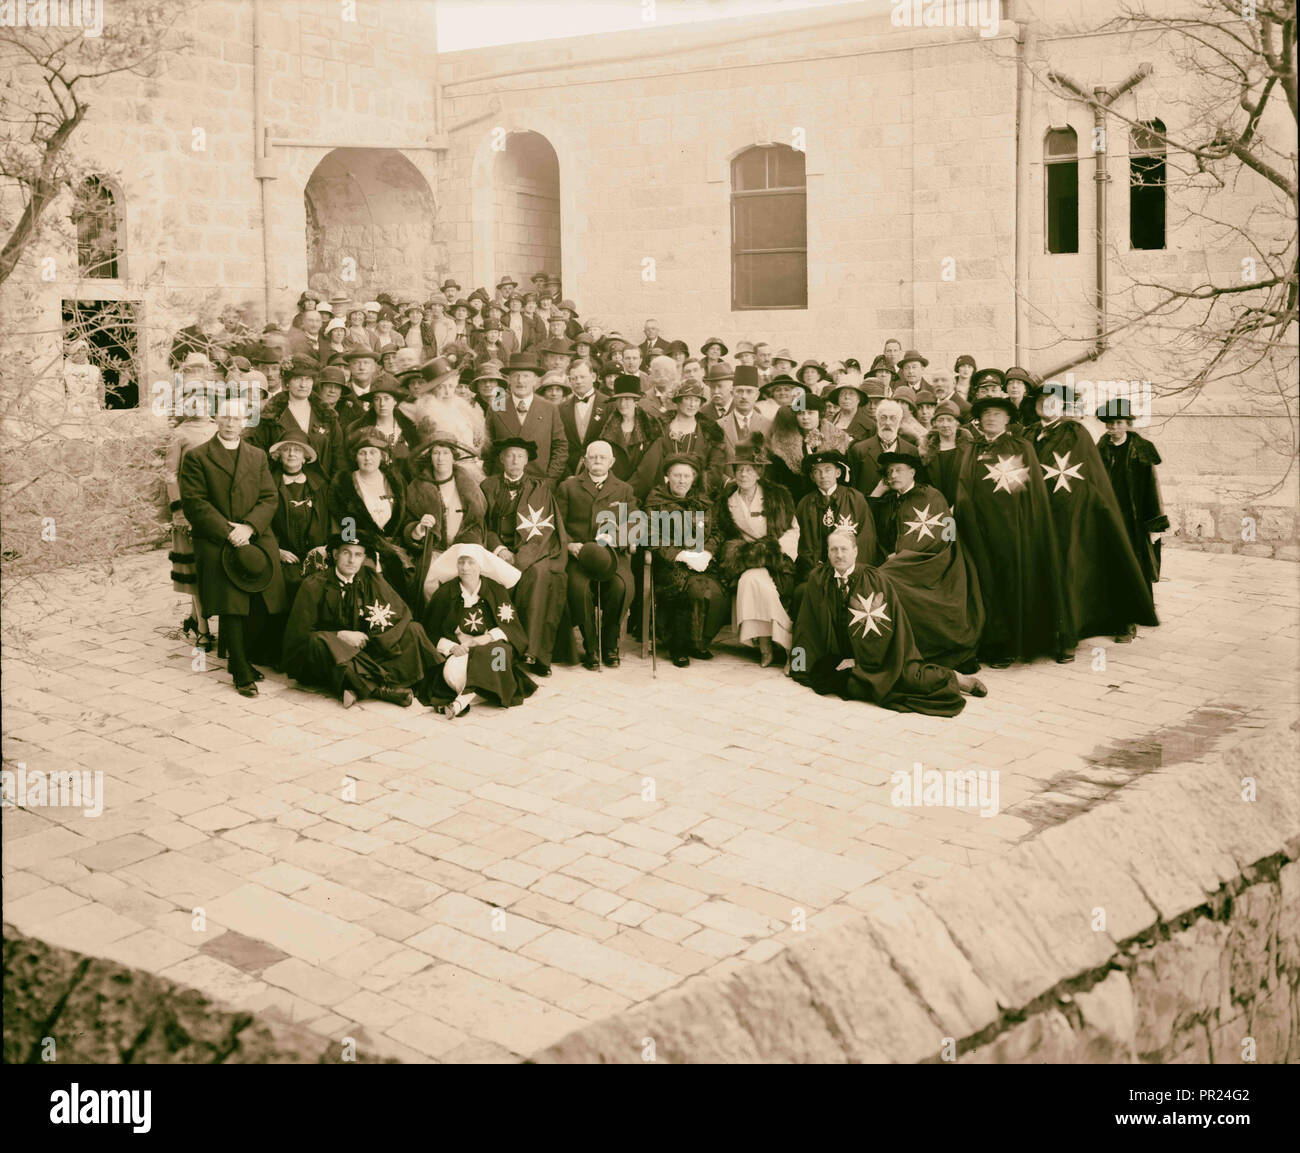 Entire staff, Ophthalmic Hospital 1898, Middle East, Israel - Stock Image